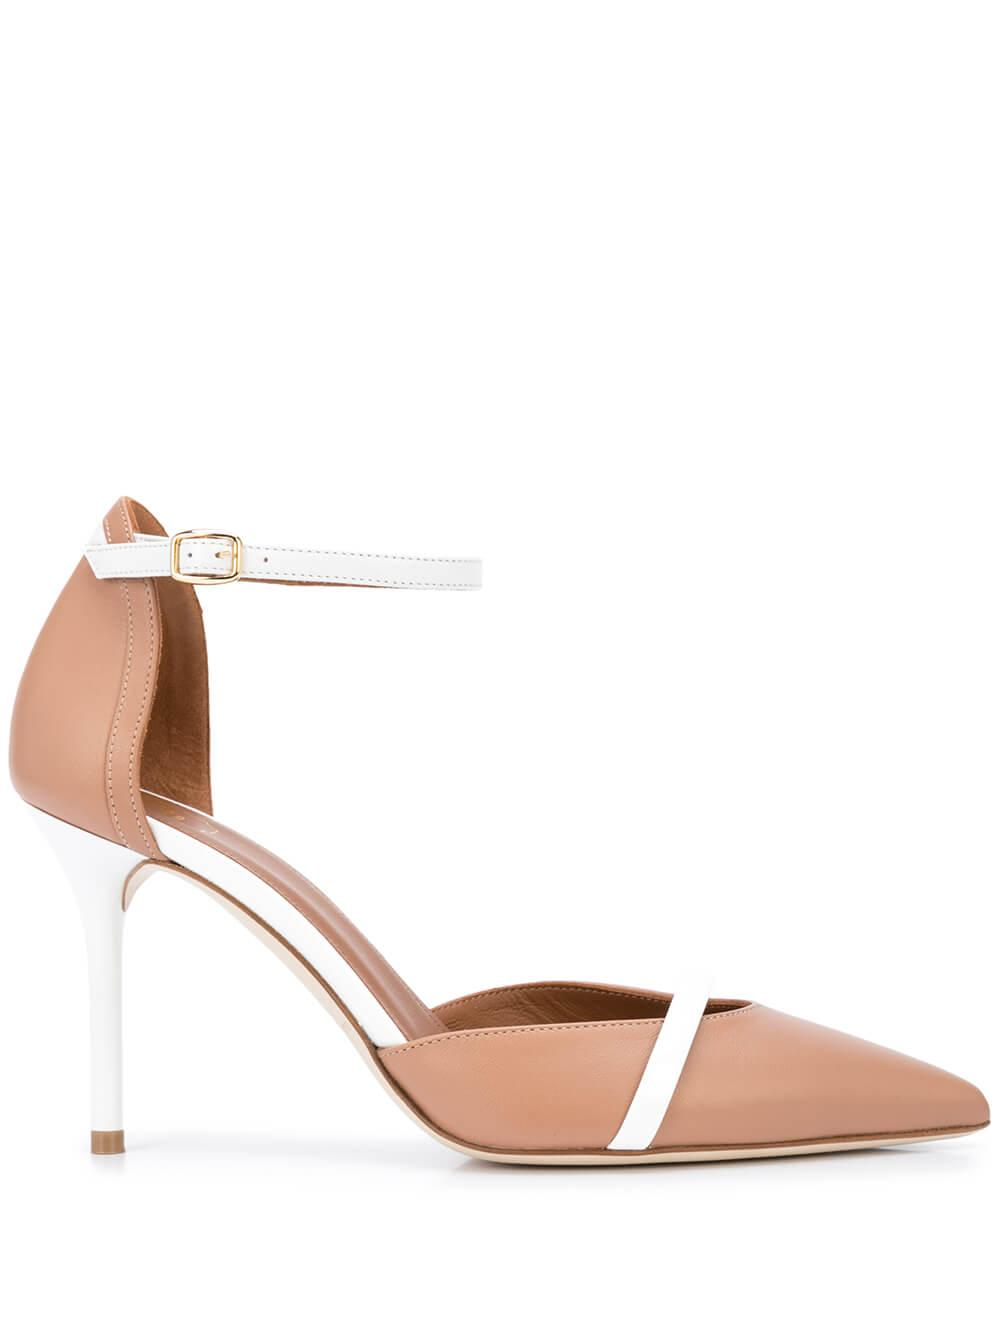 Booboo Nappa 85mm Pump With Ankle Strap Item # BOOBOO85-3